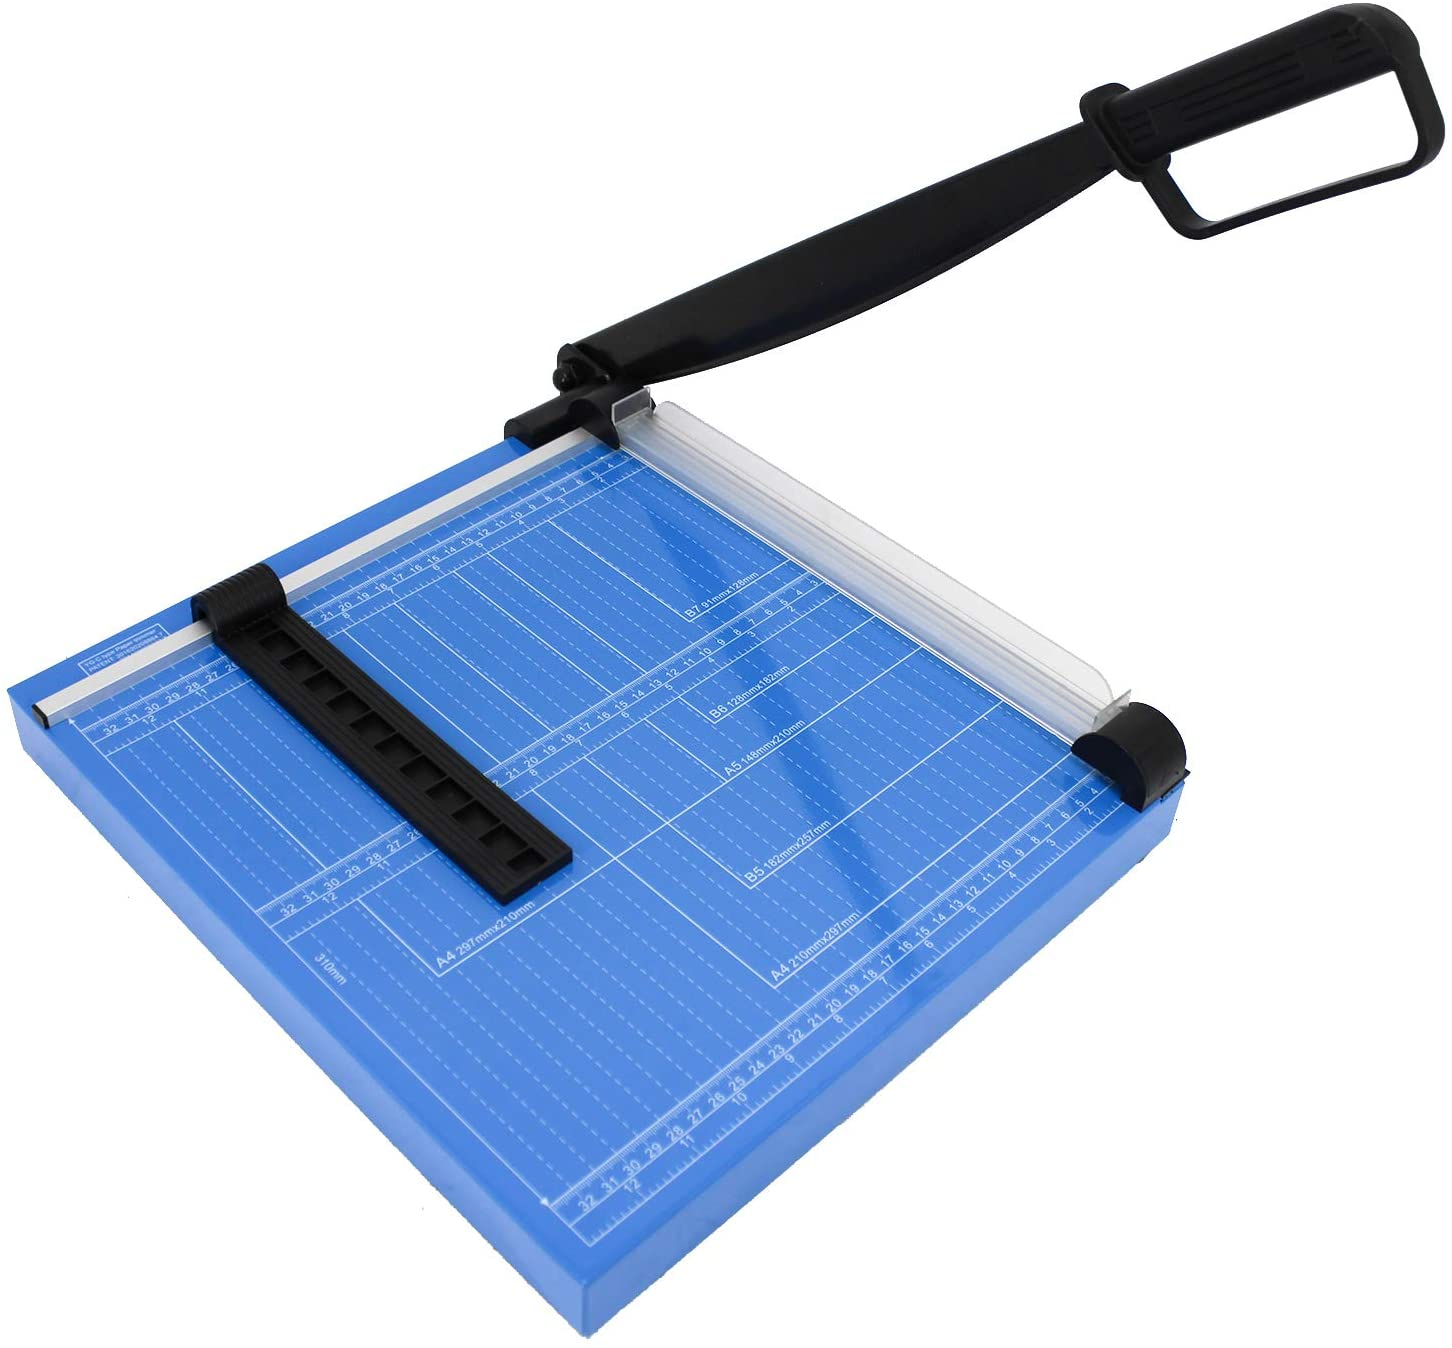 """HFS (R) 12"""" A4 Paper Cutter Multi-Purpose Trimmer for Copper Sheet, Leather, Plastic Sheet, Iron Sheet, Non-Woven Fabric 12 Sheets 80-Gram Paper Vinyl Cutter"""